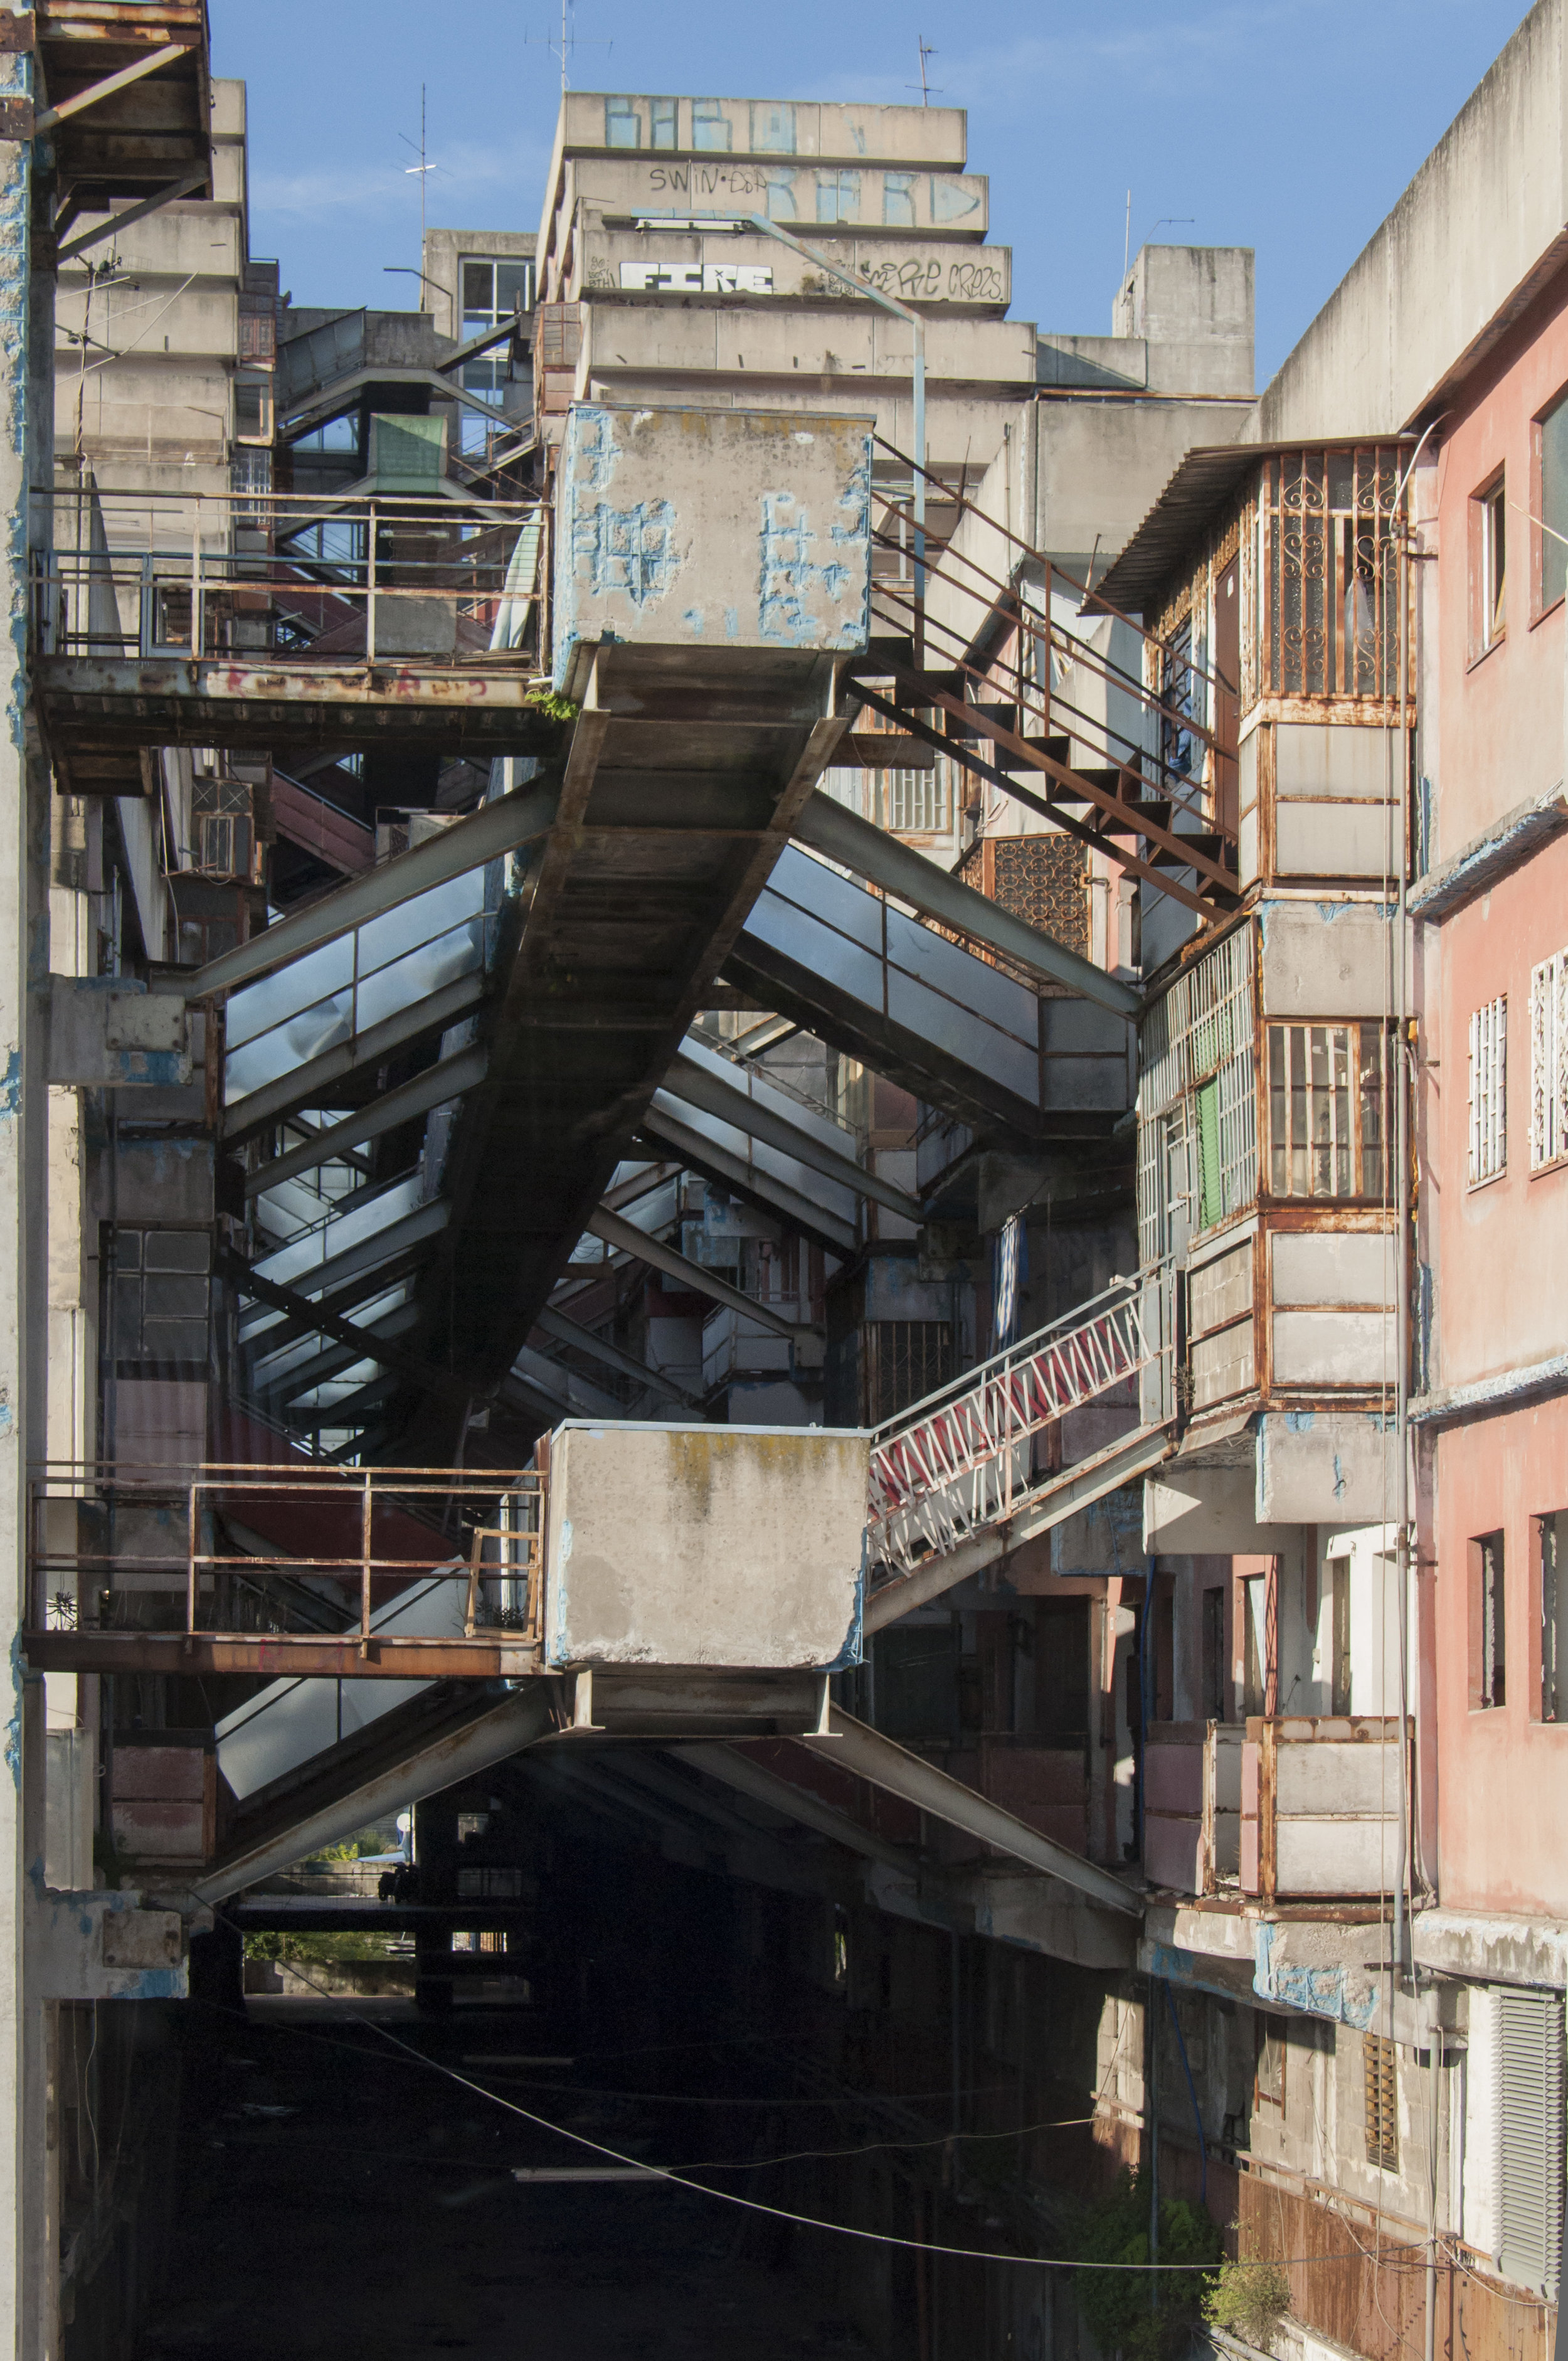 The intricate connecting stairs. Details of the Sails of Scampia in the Secondigliano district. Naples, Italy.